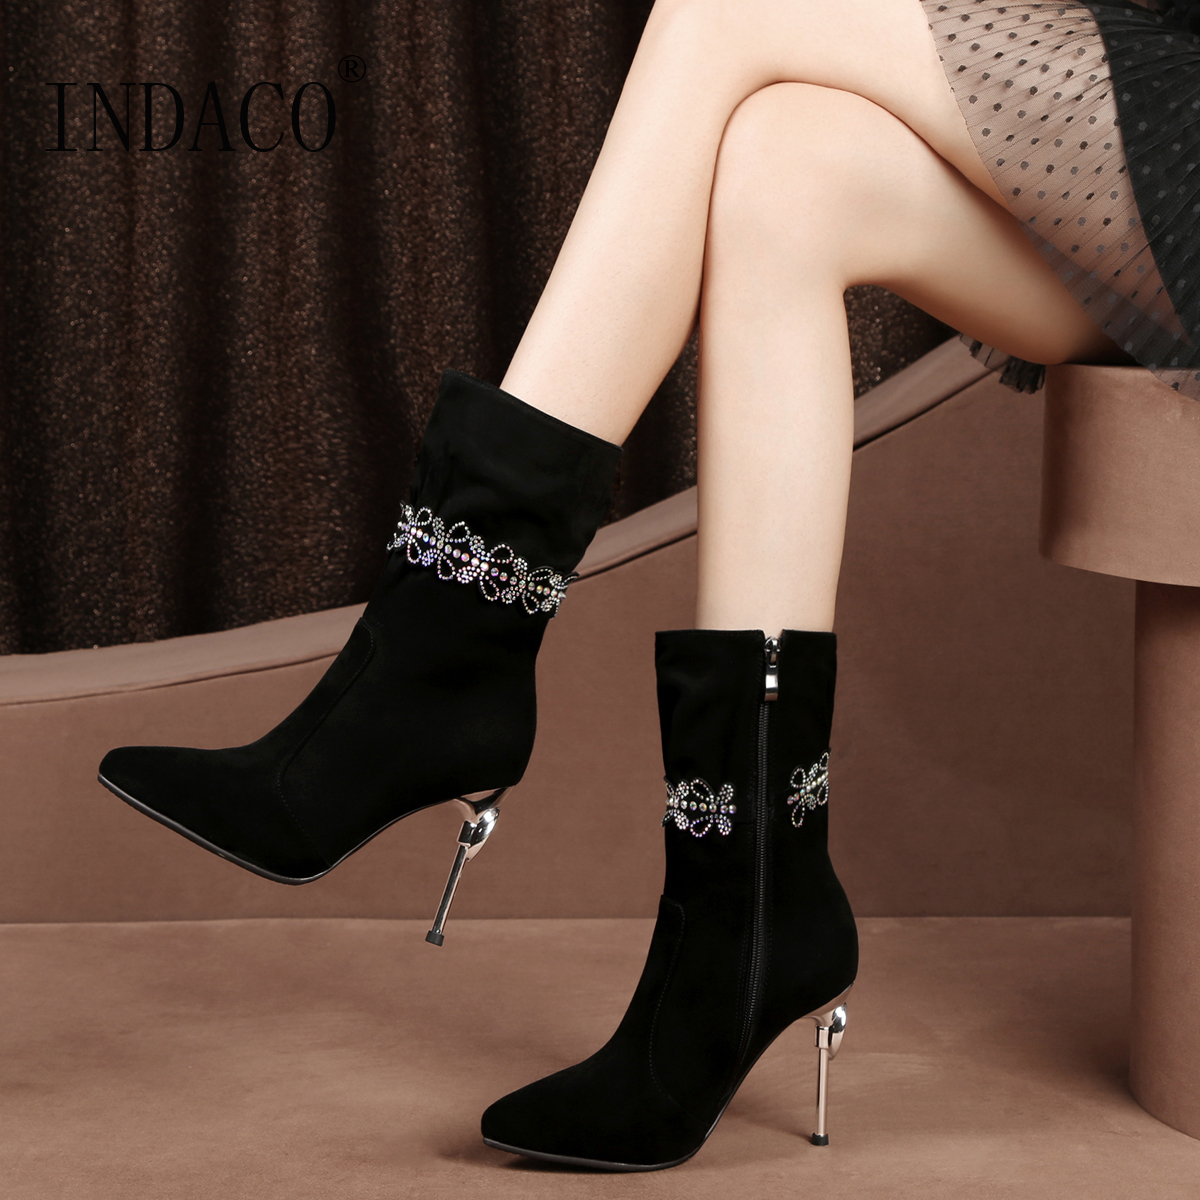 2018 New Fashion Leather Thigh High Boots Rhinestone High Heel Winter Shoes Women Warm Big Size